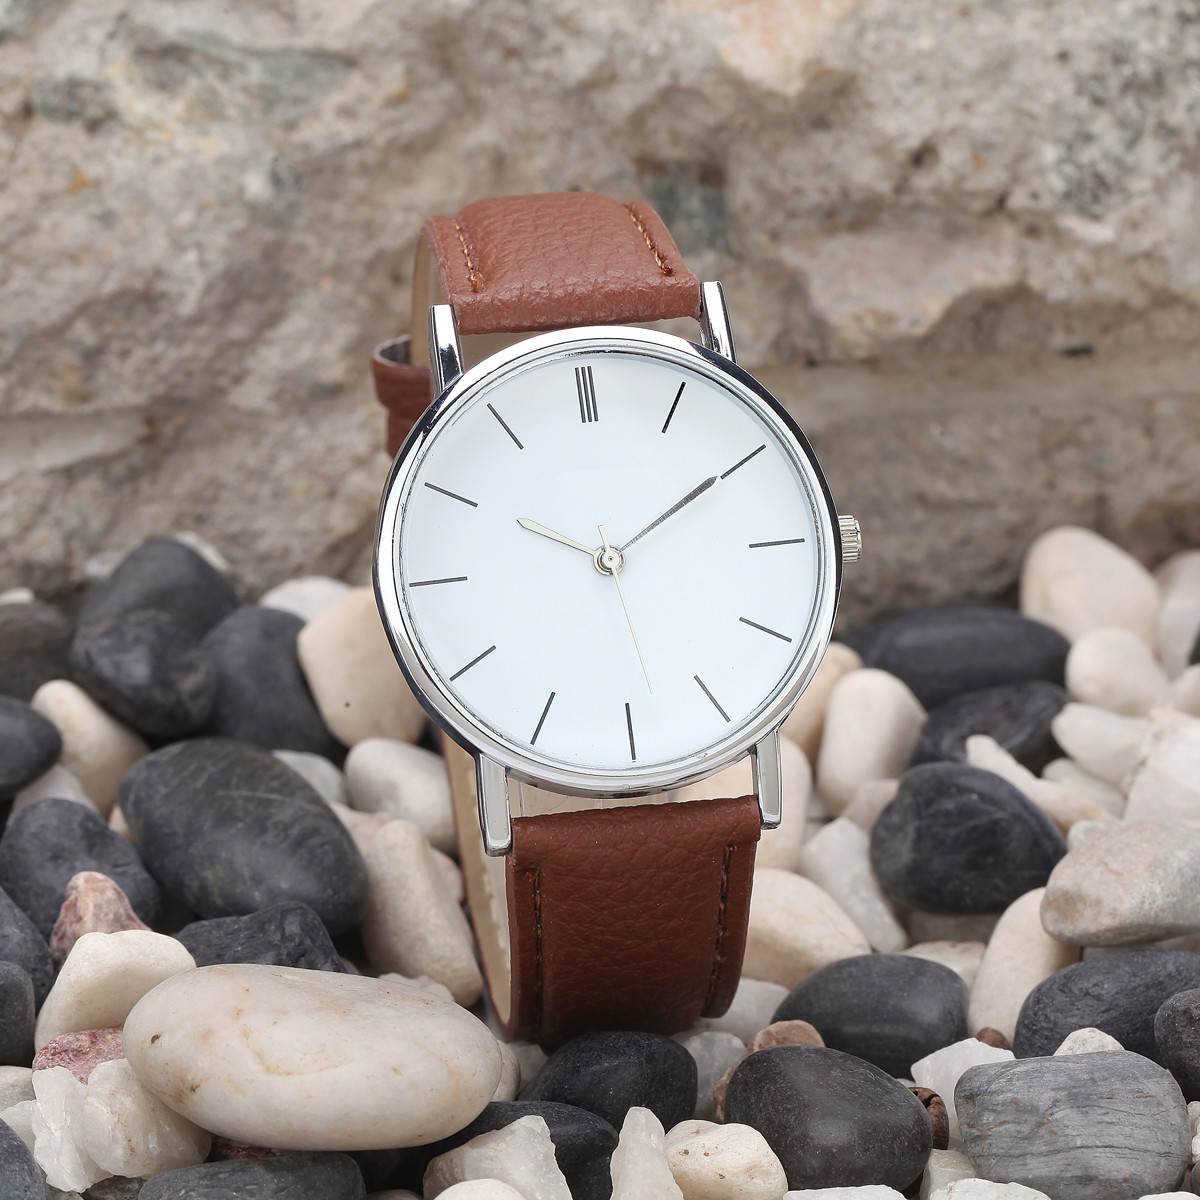 2017 NEW Hot Sale 1pc Women watches Retro Design Leather Band simple design Analog Alloy Quartz Wrist watch women relogio #07 hot new fashion quartz watch women gift rainbow design leather band analog alloy quartz wrist watch clock relogio feminino